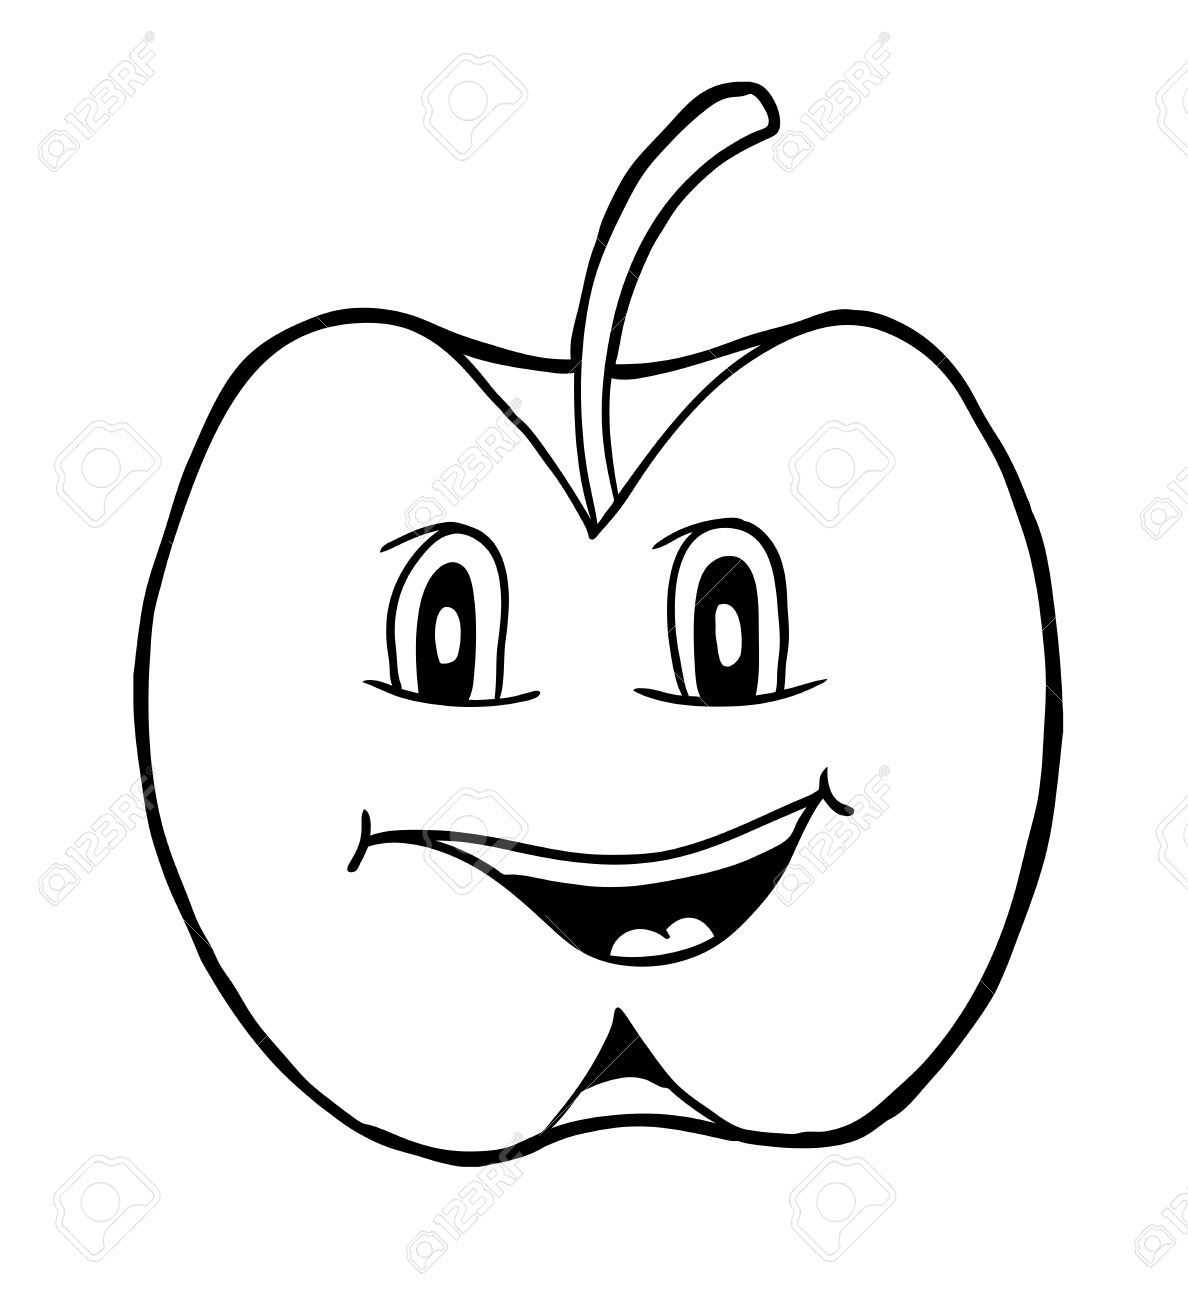 Apple With Smile, Vector Illustration, Coloring Book Royalty Free ...